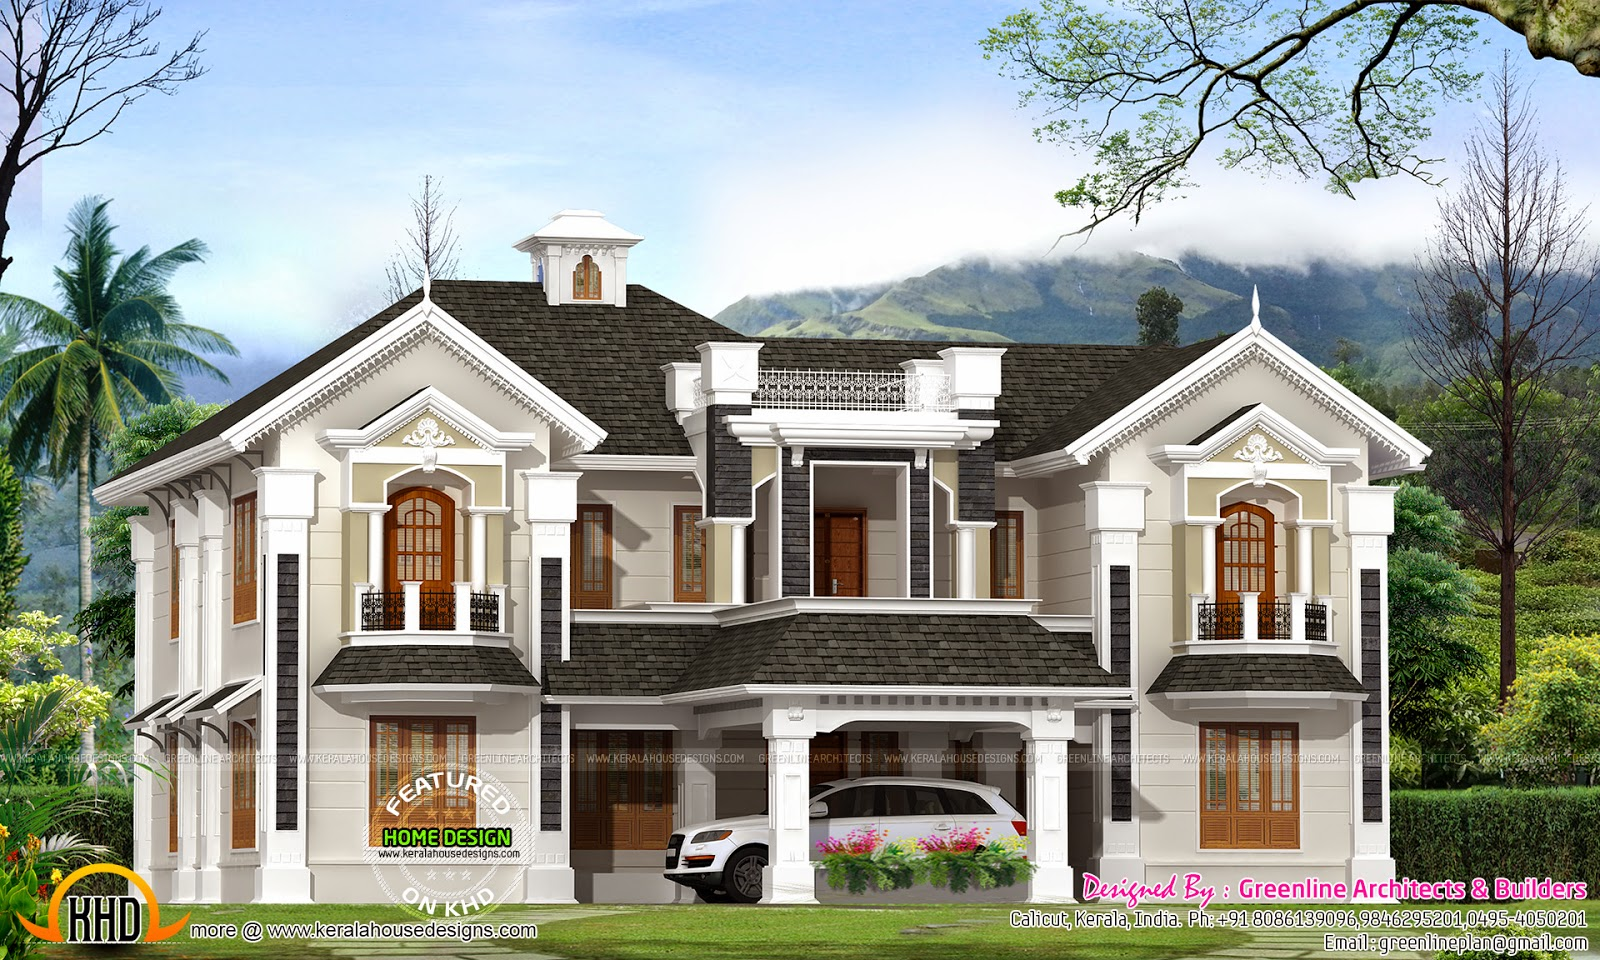 Colonial style house in kerala kerala home design and for Kerala style home